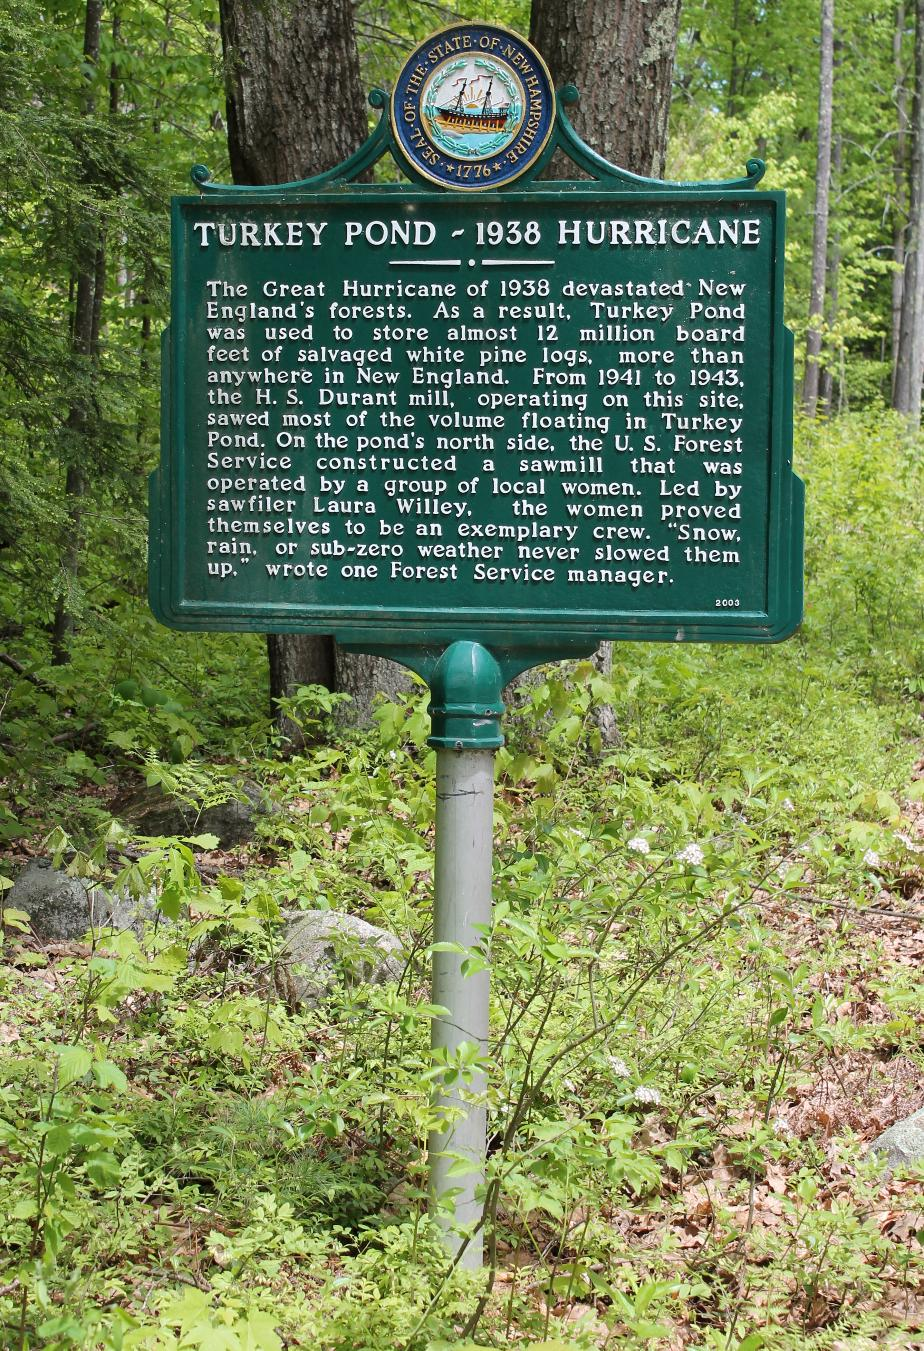 Turkey Pond (Concord) NH Hurricane Historical Marker